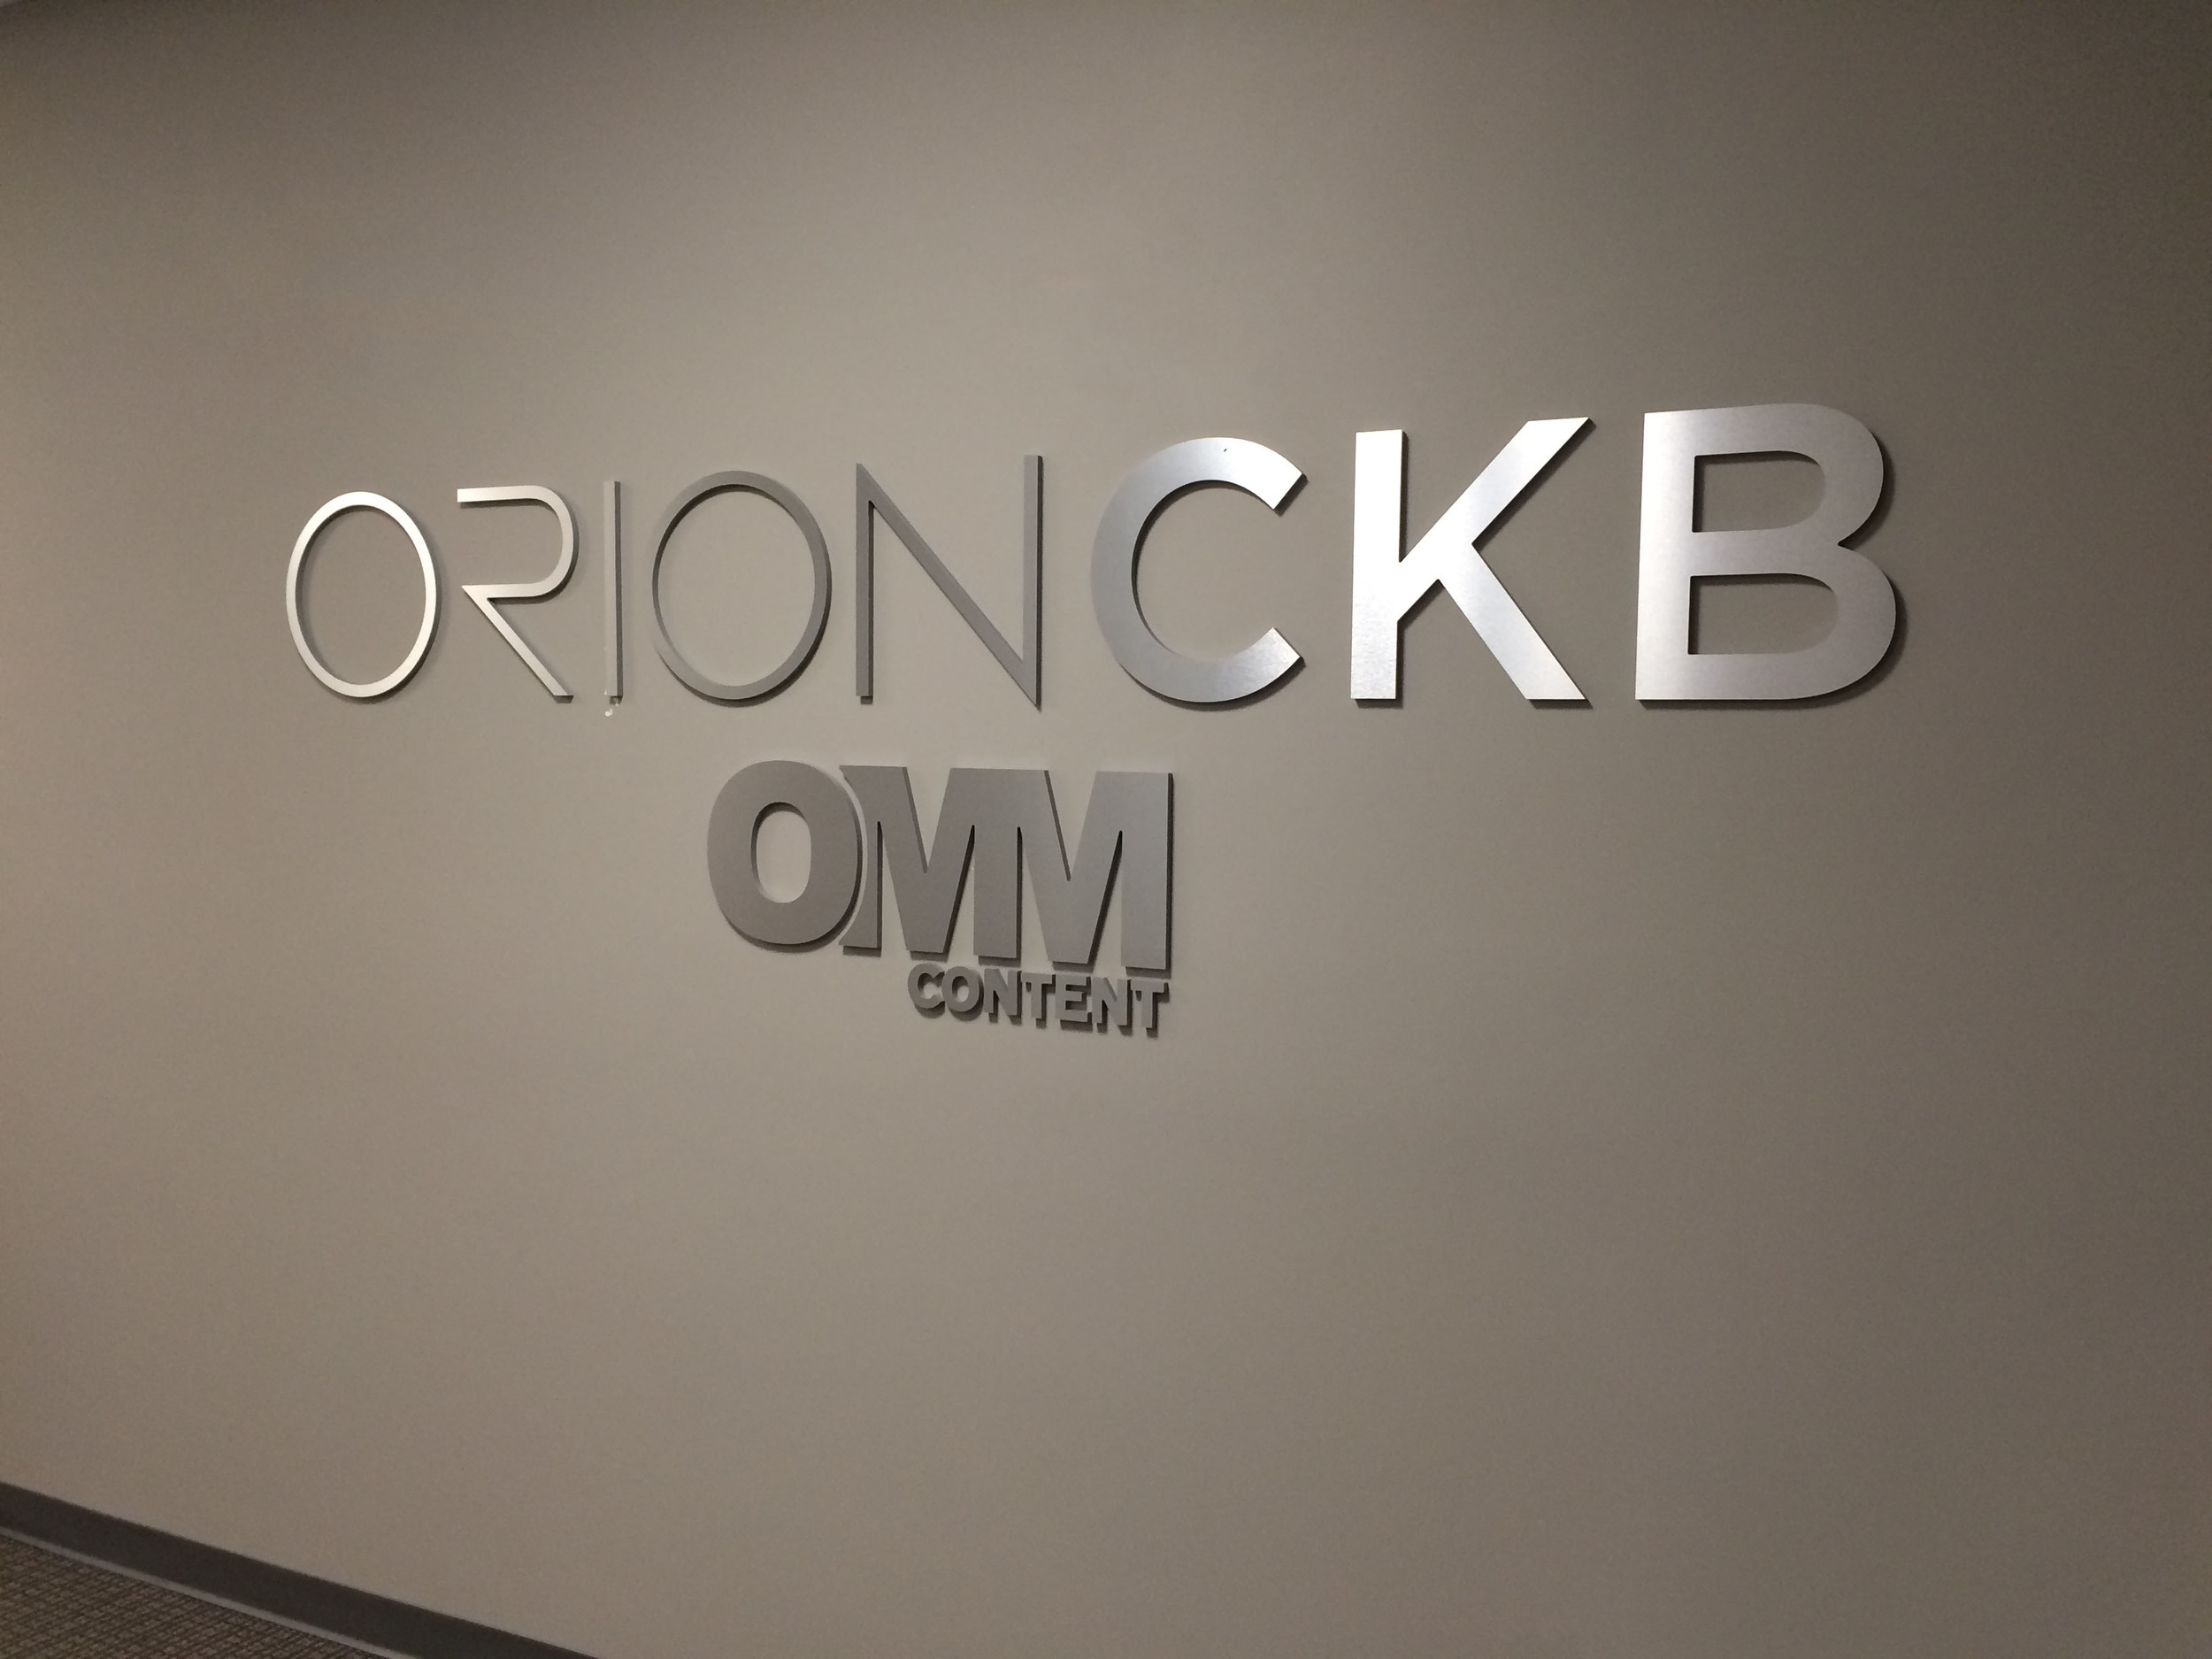 Brushed Aluminum Wall Lettering